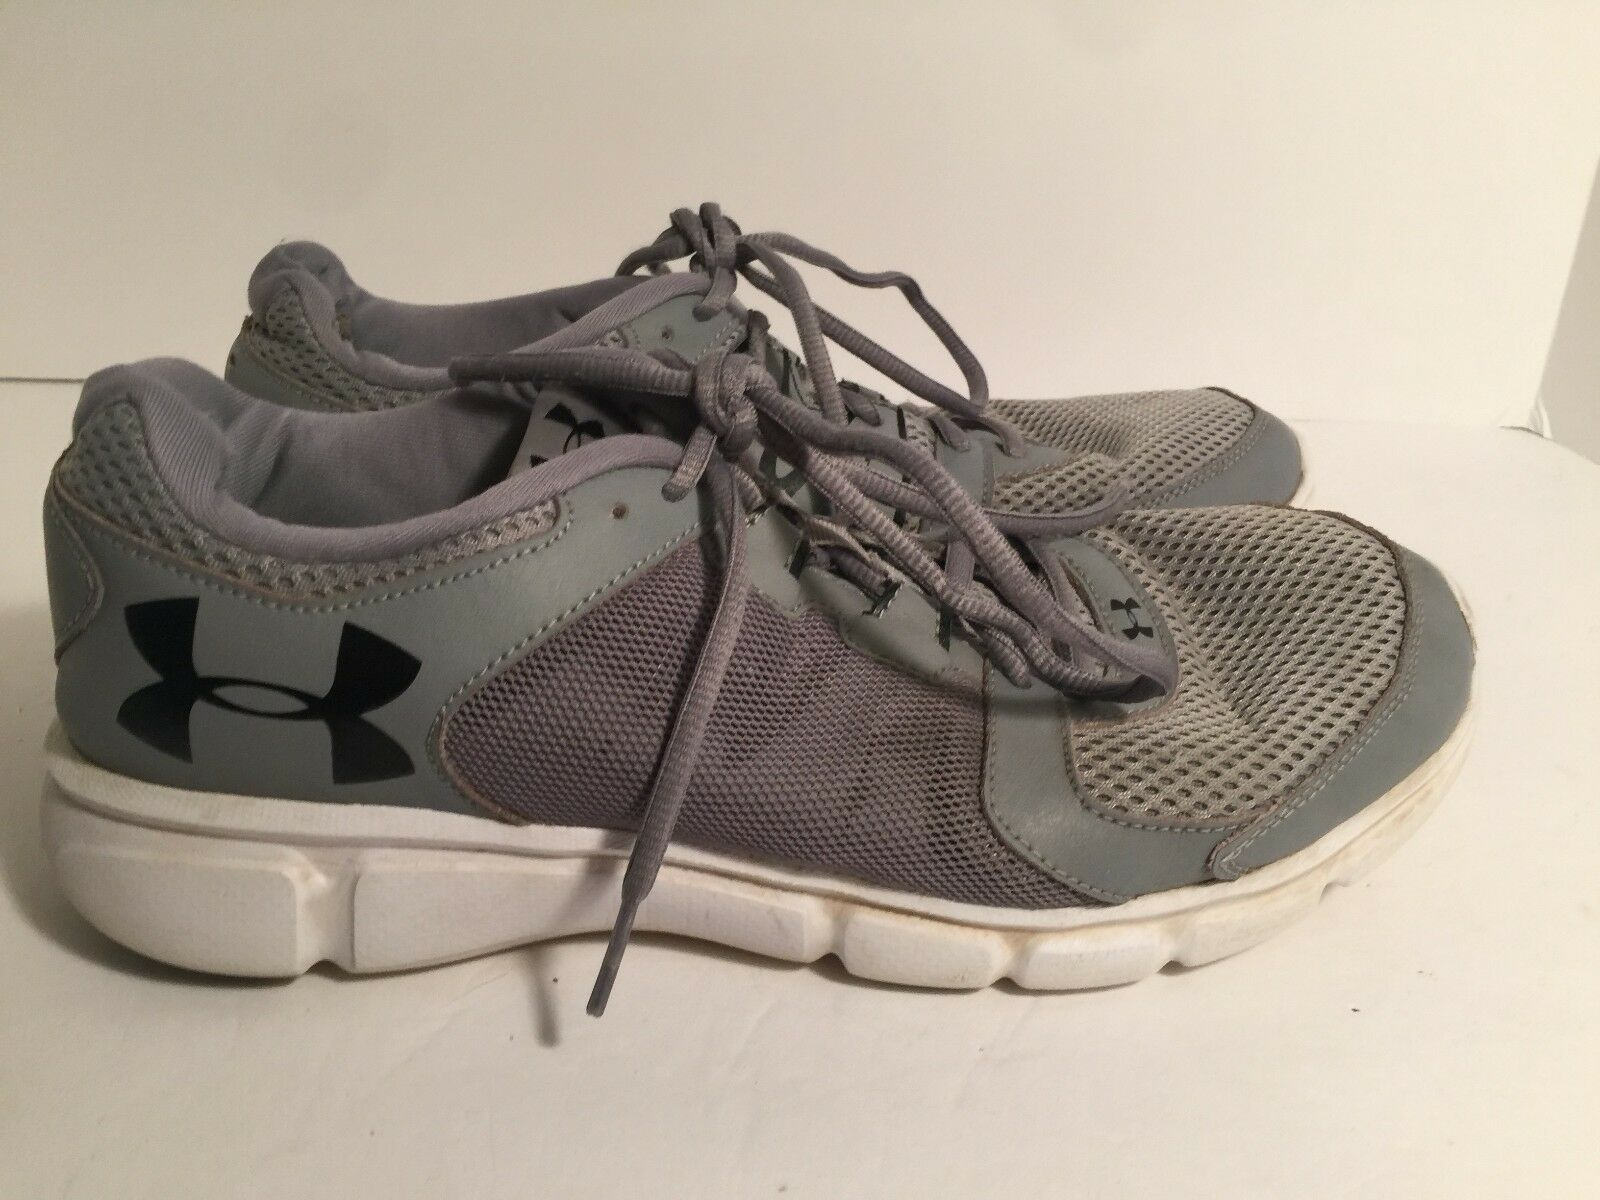 6ecfe2b08a4aa UNDER ARMOUR Mens Athletic Shoes Low Top Gray Gray Gray Size 10.5 a85f99